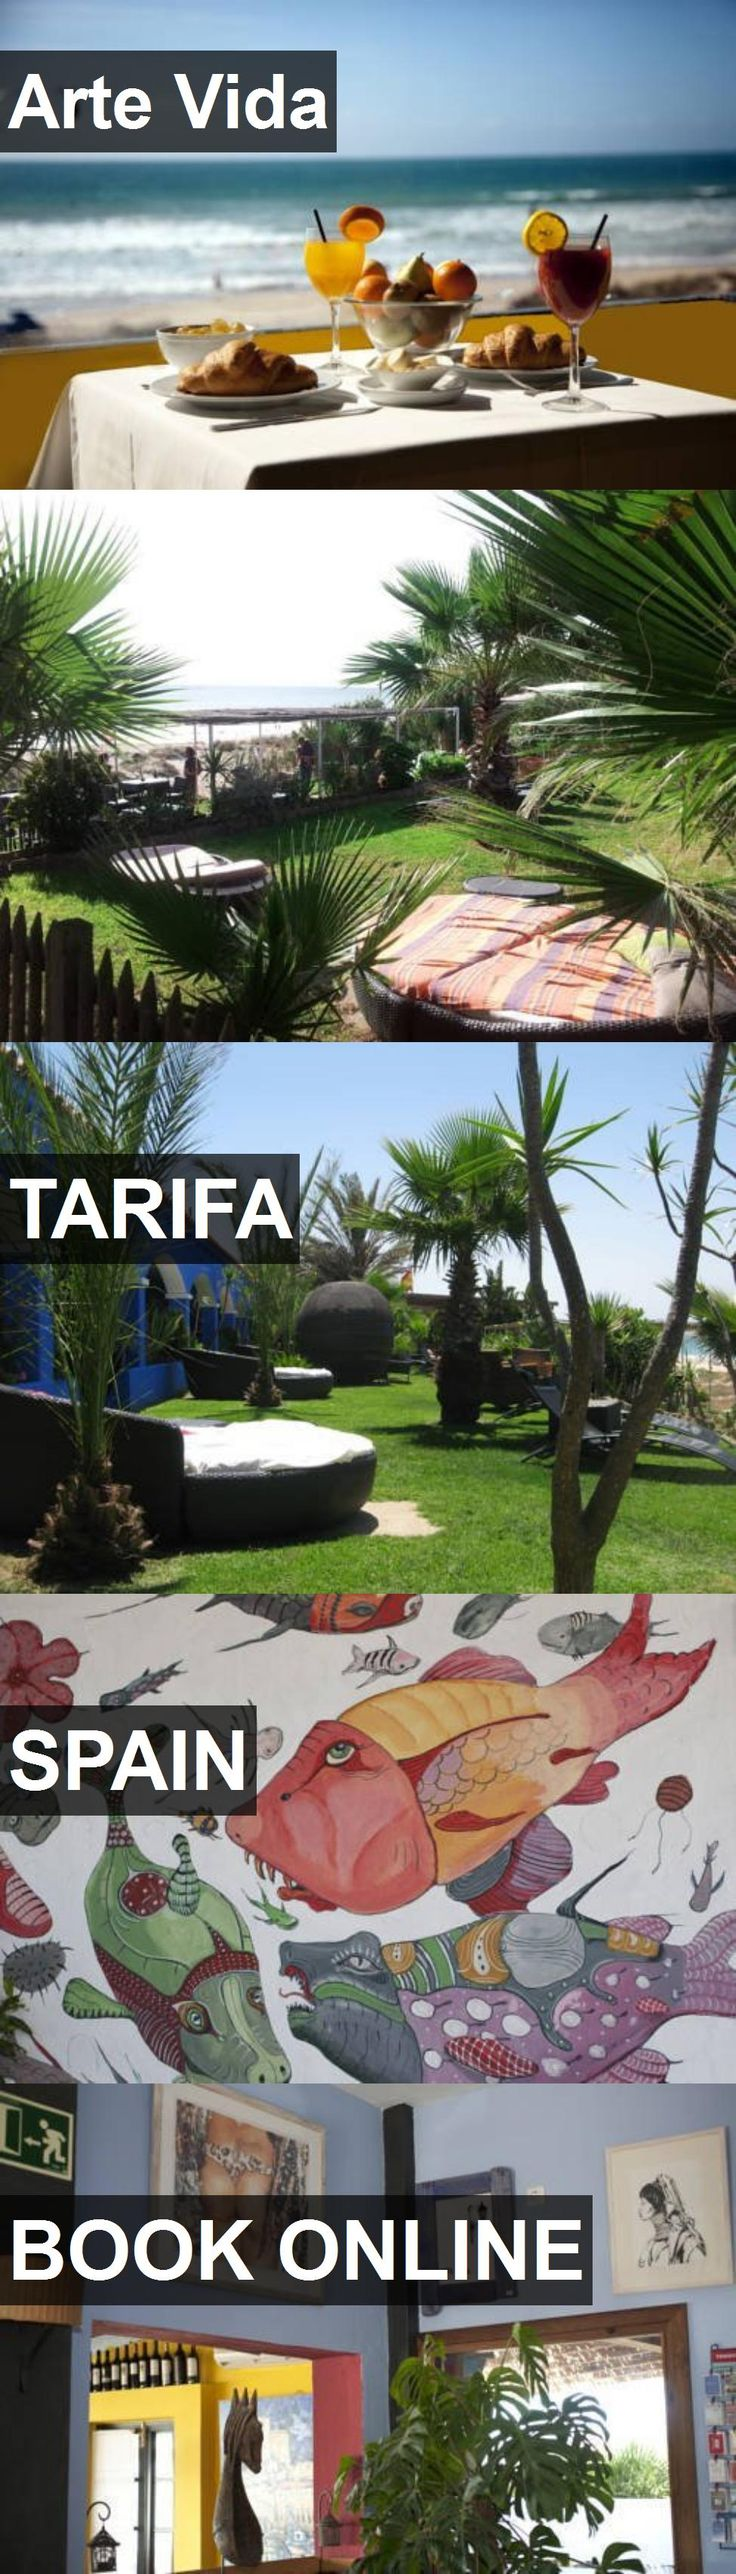 Hotel Arte Vida in Tarifa, Spain. For more information, photos, reviews and best prices please follow the link. #Spain #Tarifa #travel #vacation #hotel